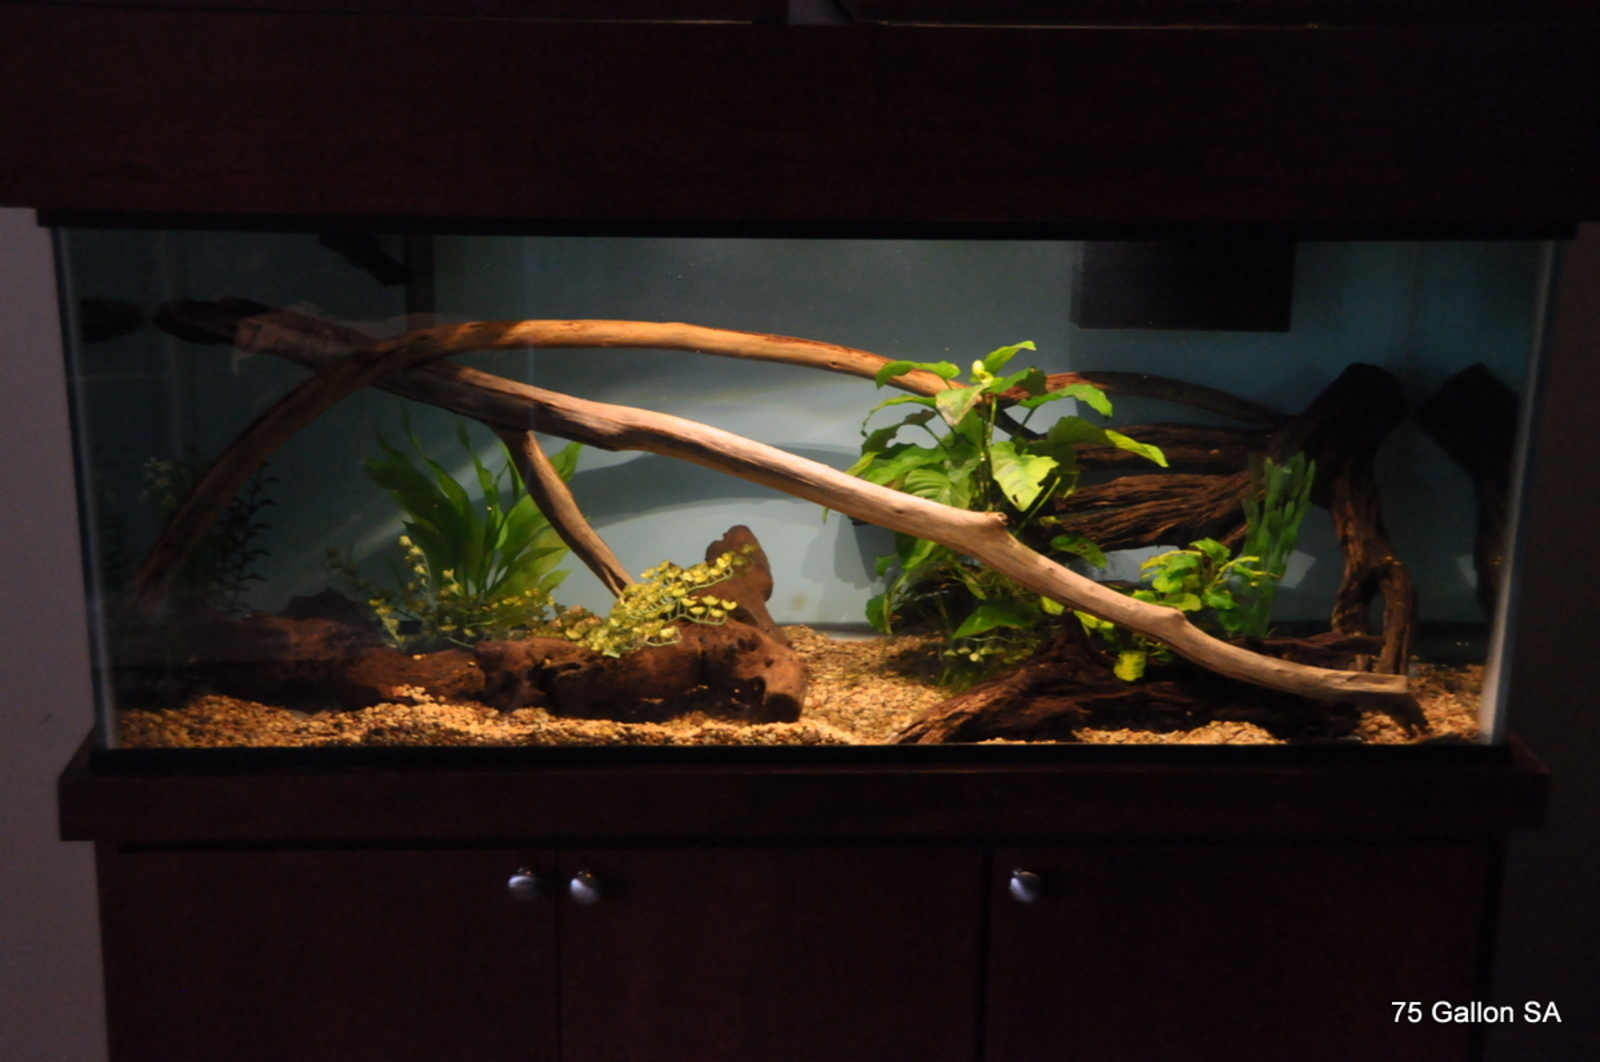 75 Gallon SA Pike setup | by Damien Fallin